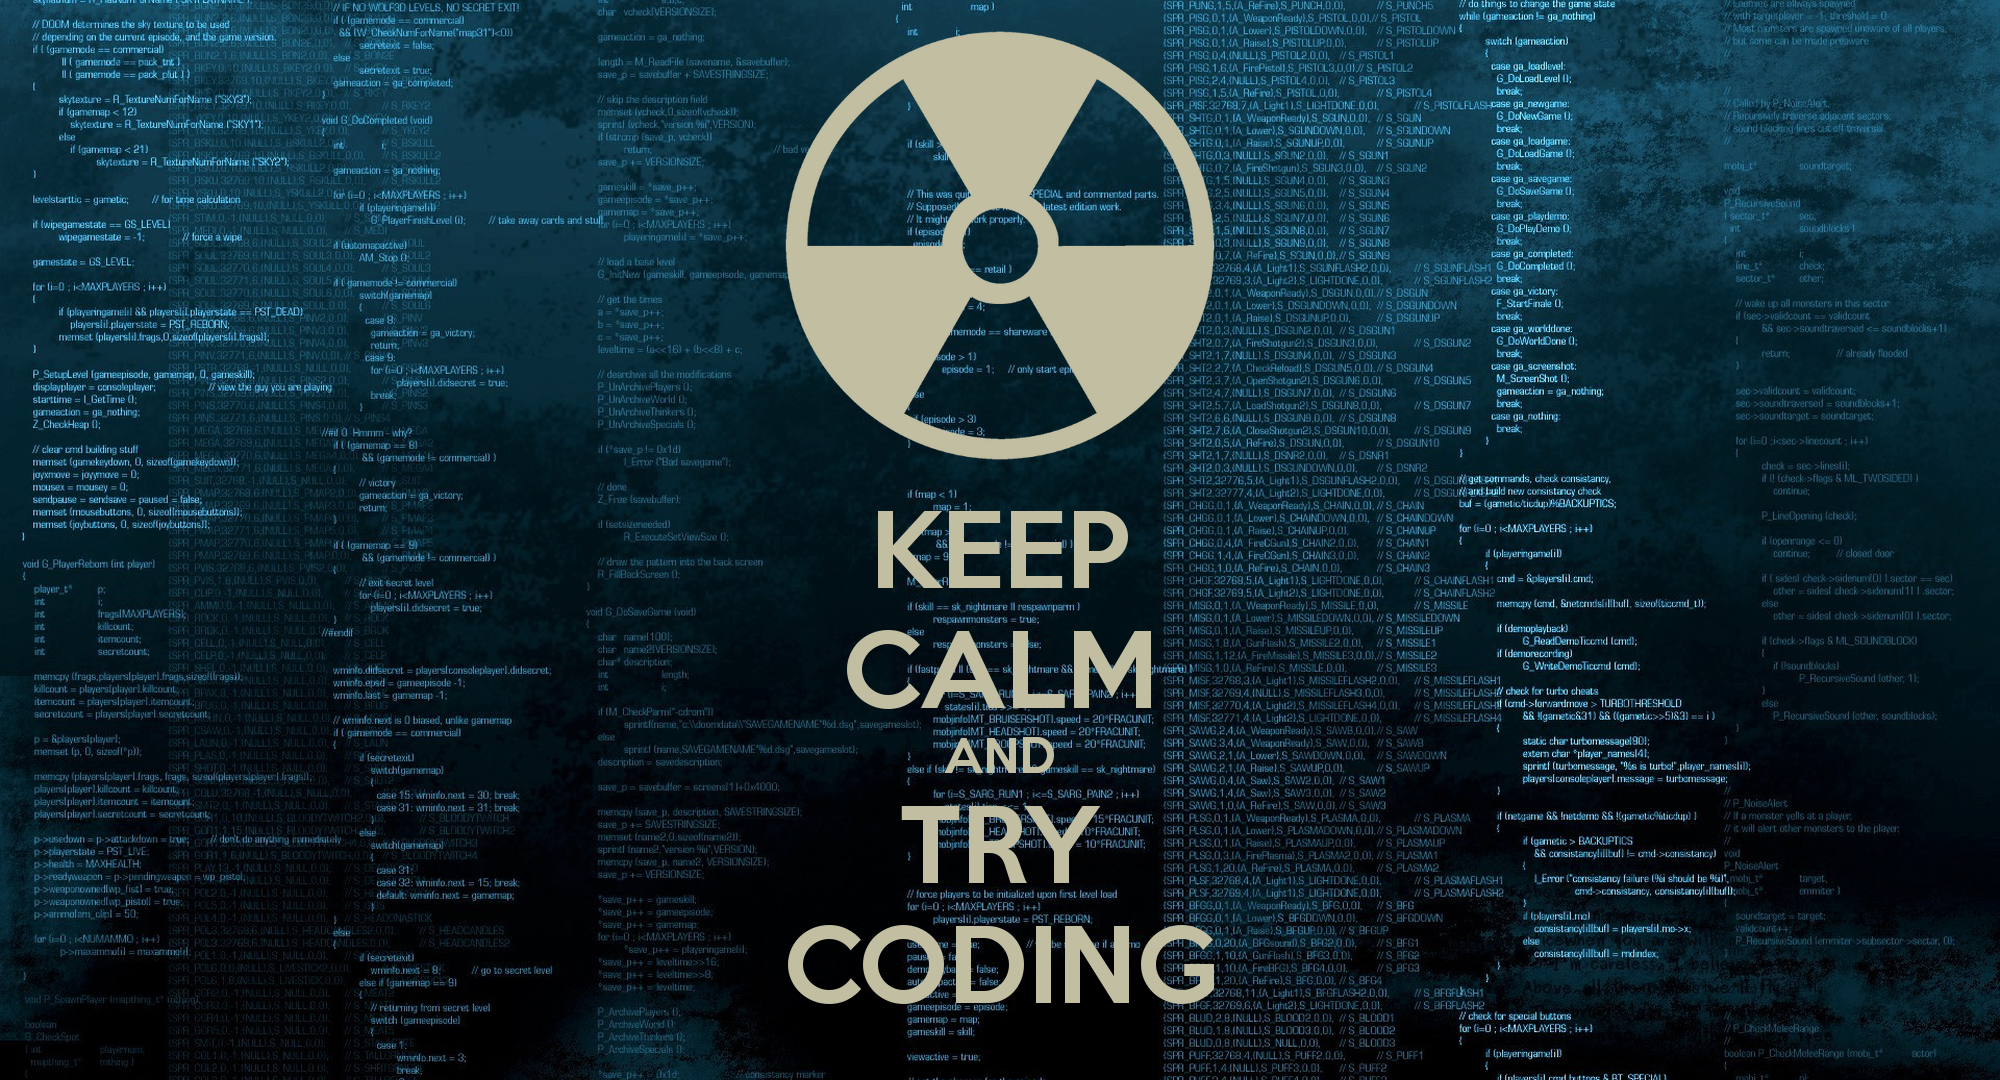 Coding Wallpaper Widescreen wallpaper 2000x1080